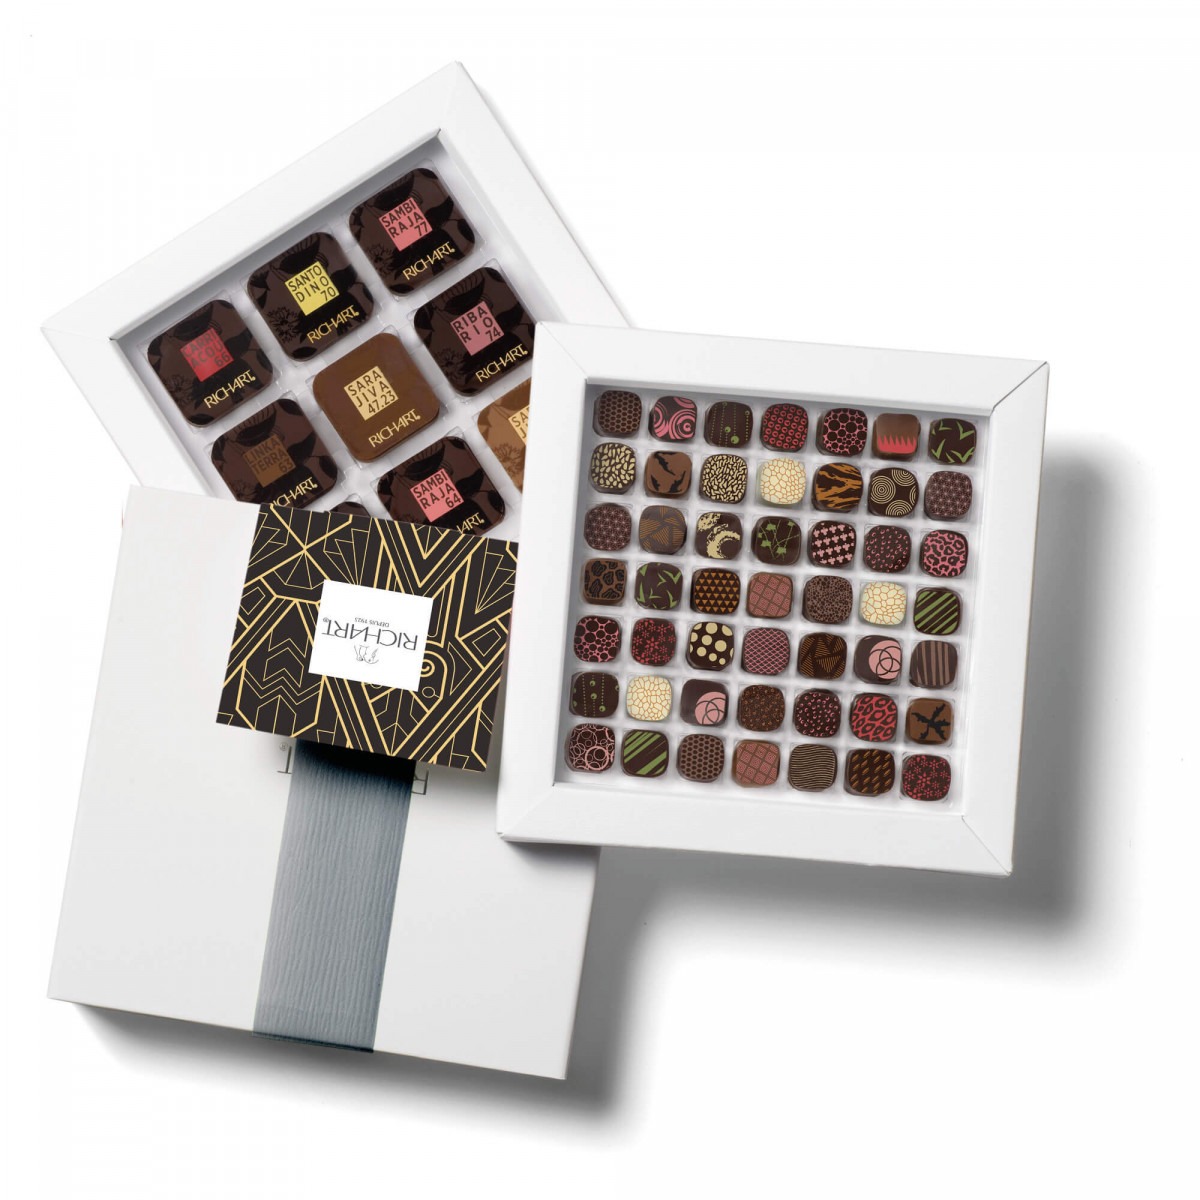 Initiation Box of 85 chocolates